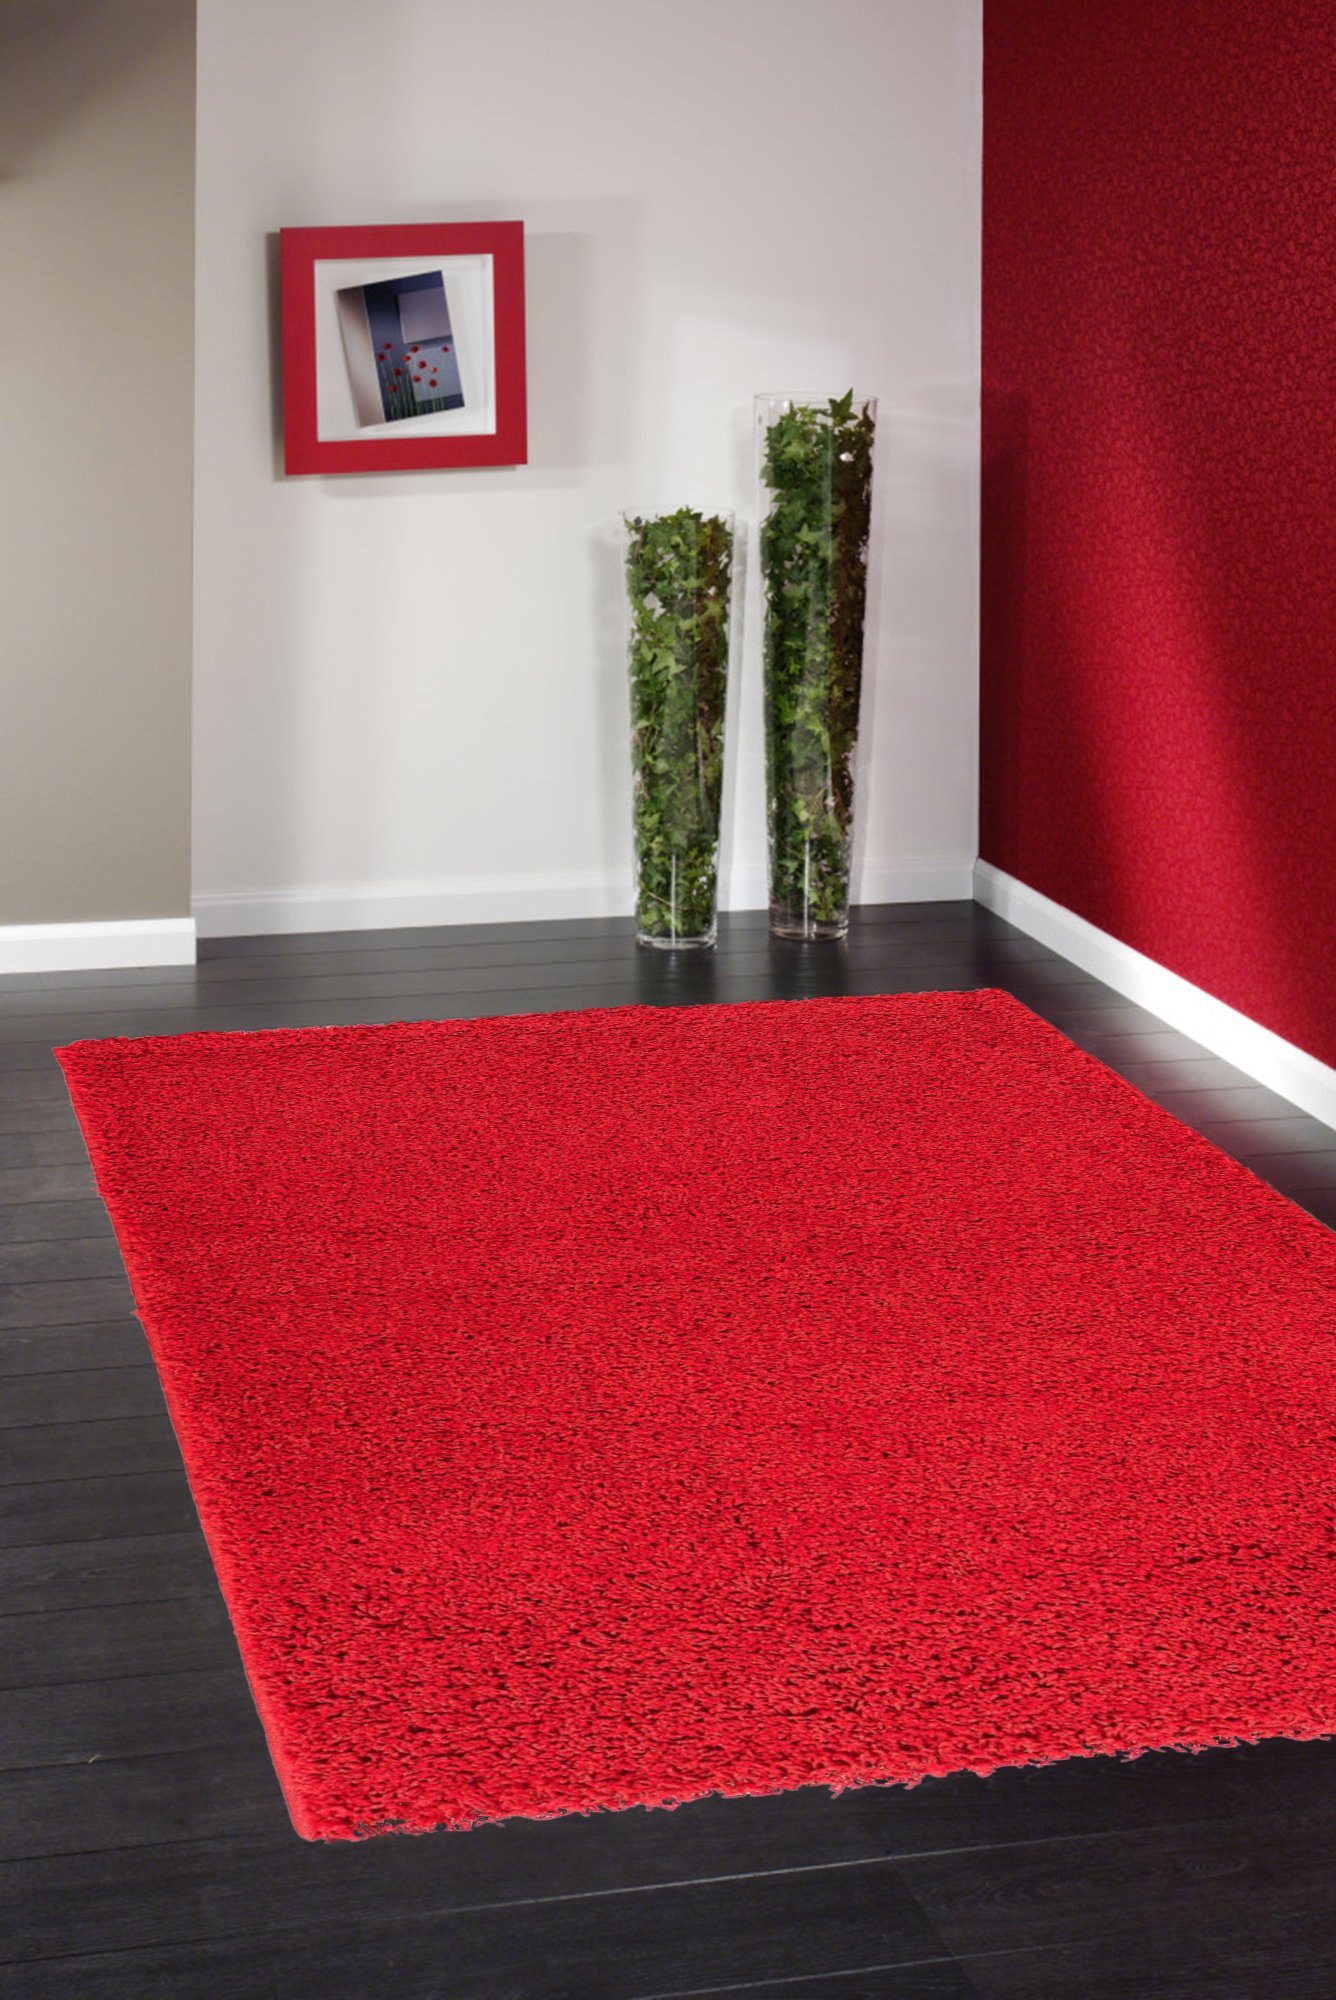 Ottomanson Soft Cozy Color Solid Shag Area Rug Contemporary Living and Bedroom Soft Shag Area Rug, Red, 7'10'' L x 9'10'' W